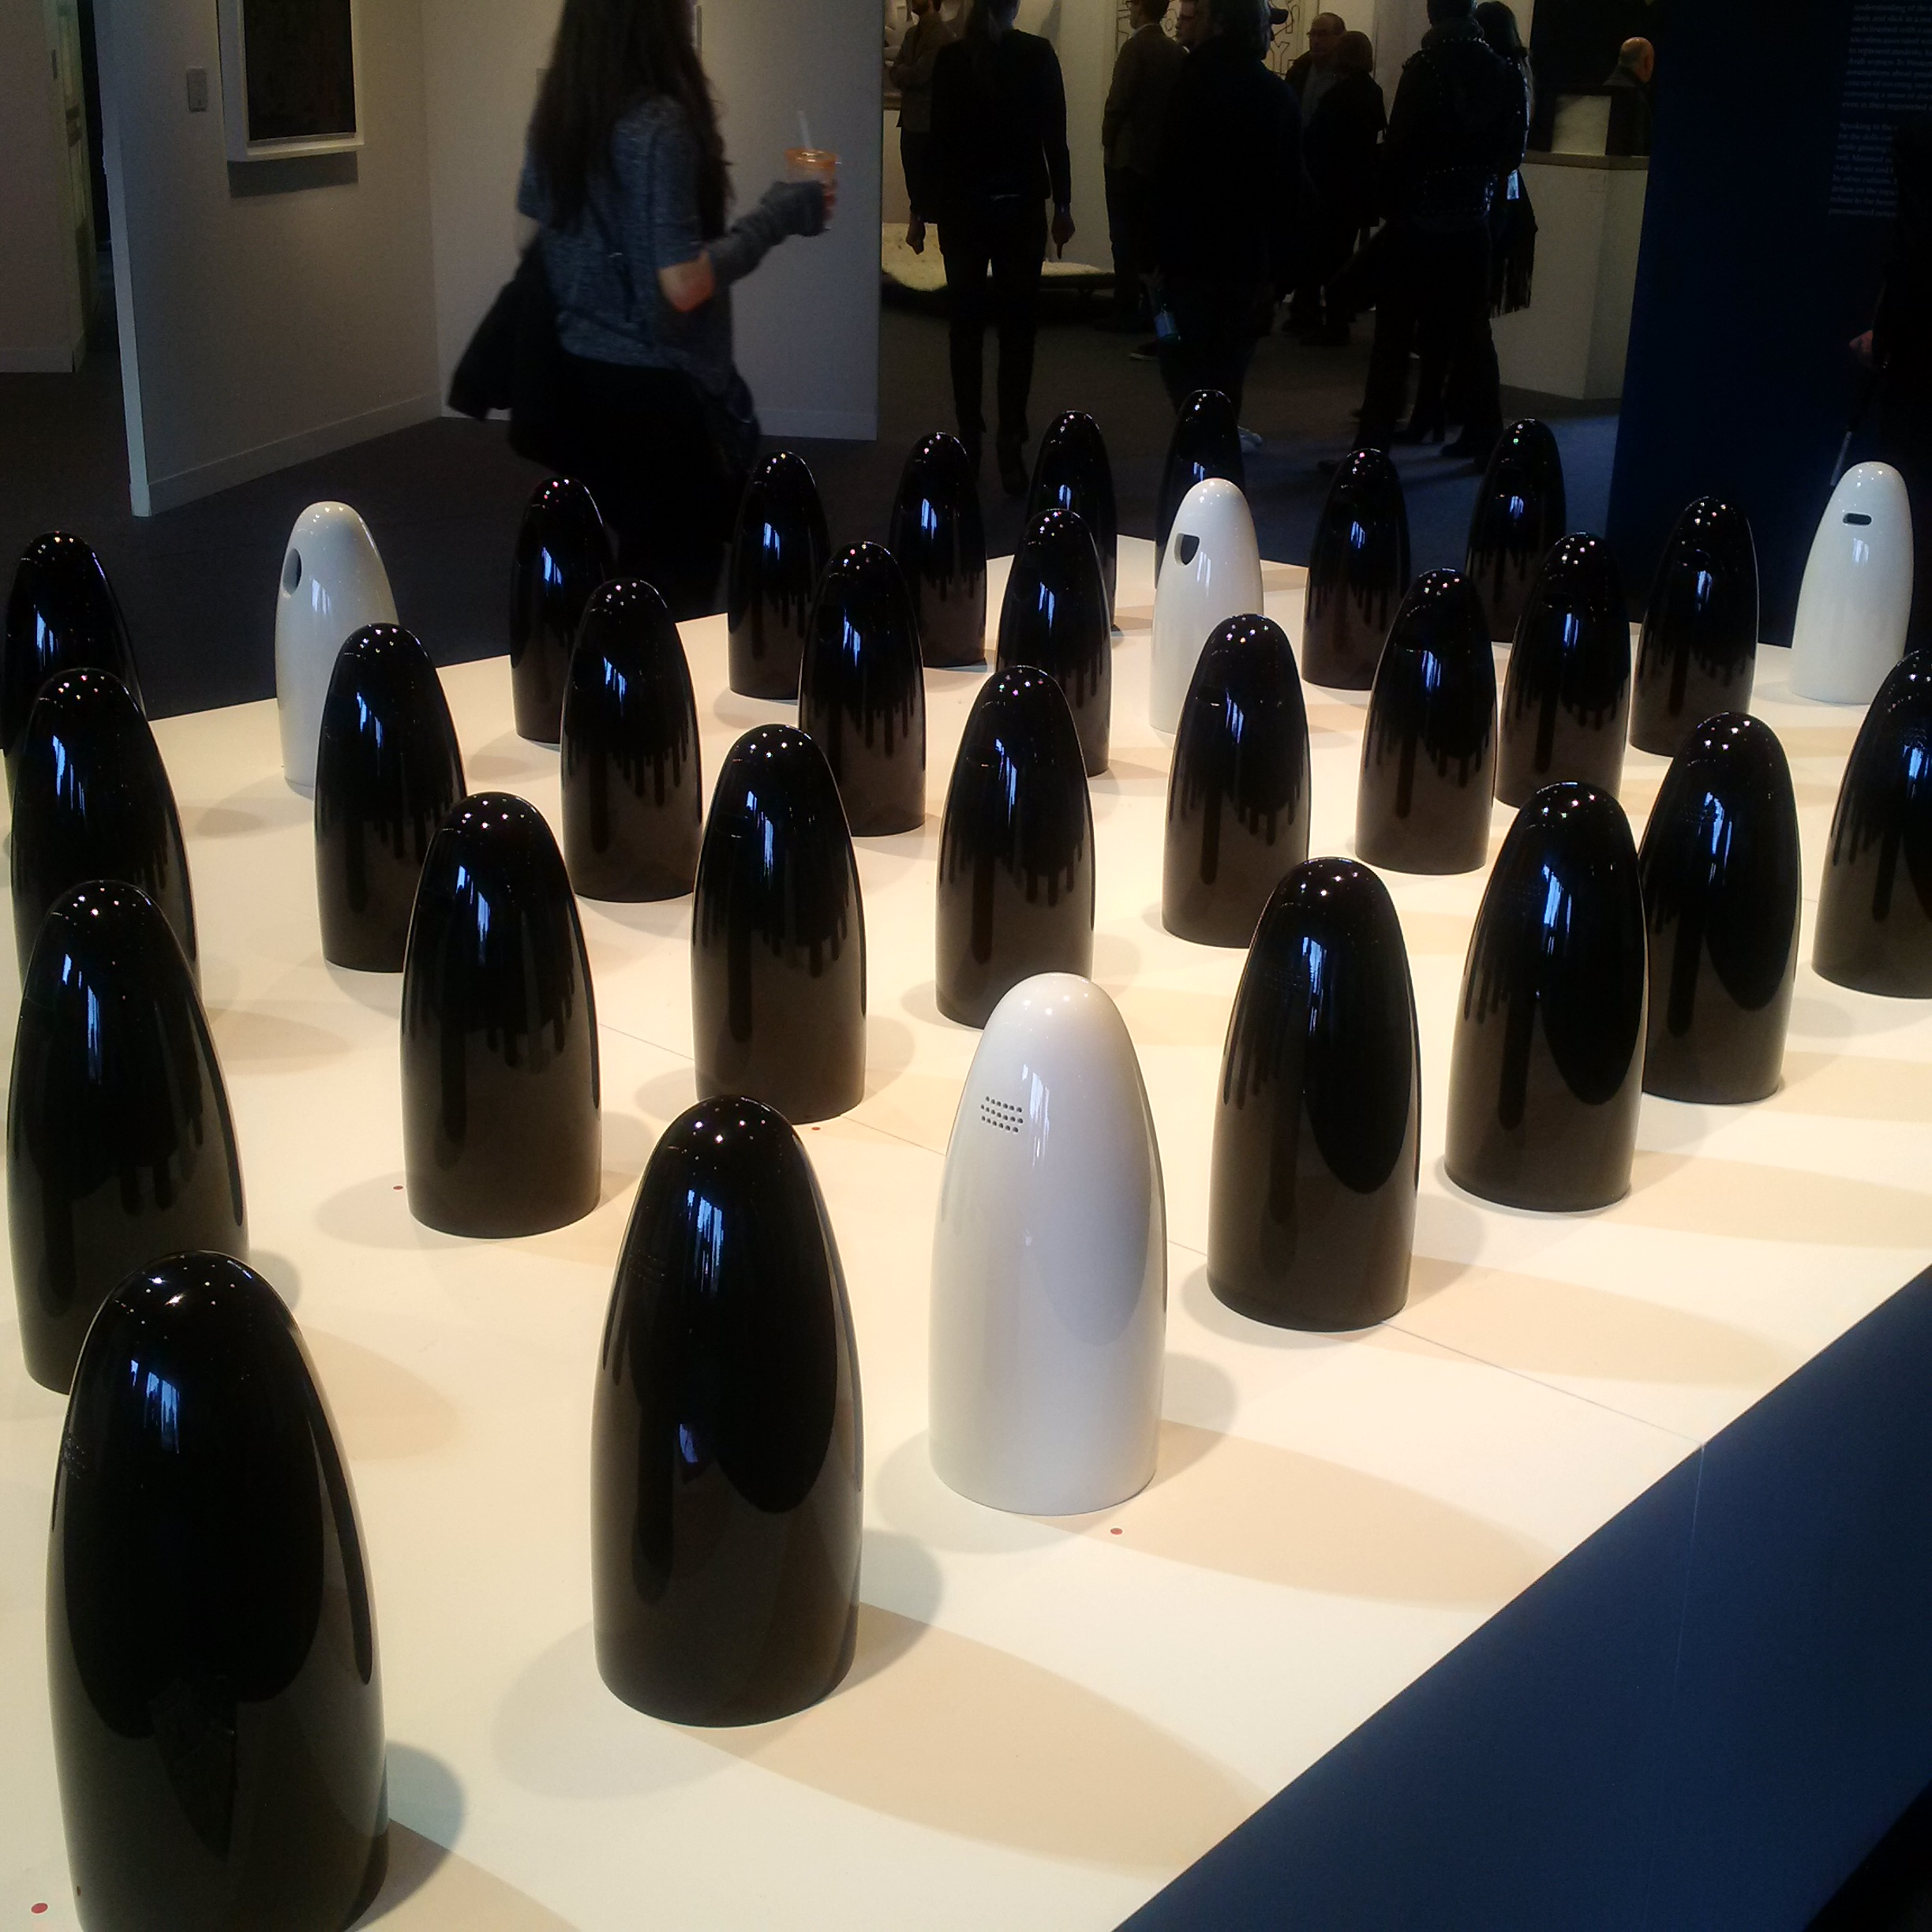 Arab Dolls by Carlo Massoud presented by Carwan Gallery - The Armory Show